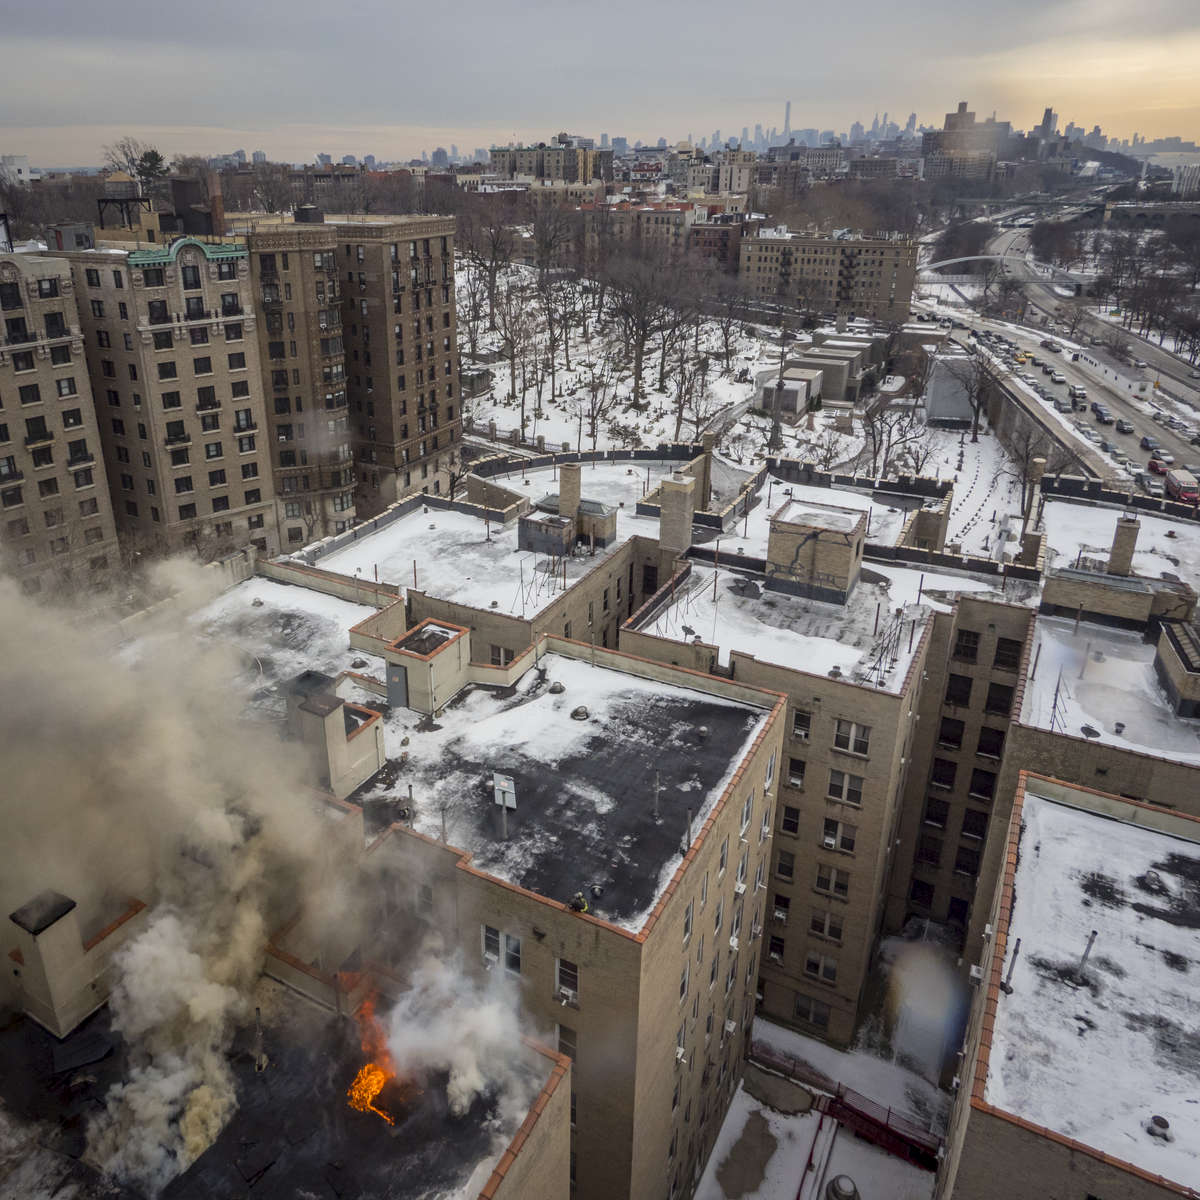 Firefighters battle a 7-alarm fire in a building located at 775 Riverside Drive in Manhattan on Monday, January 8, 2018.